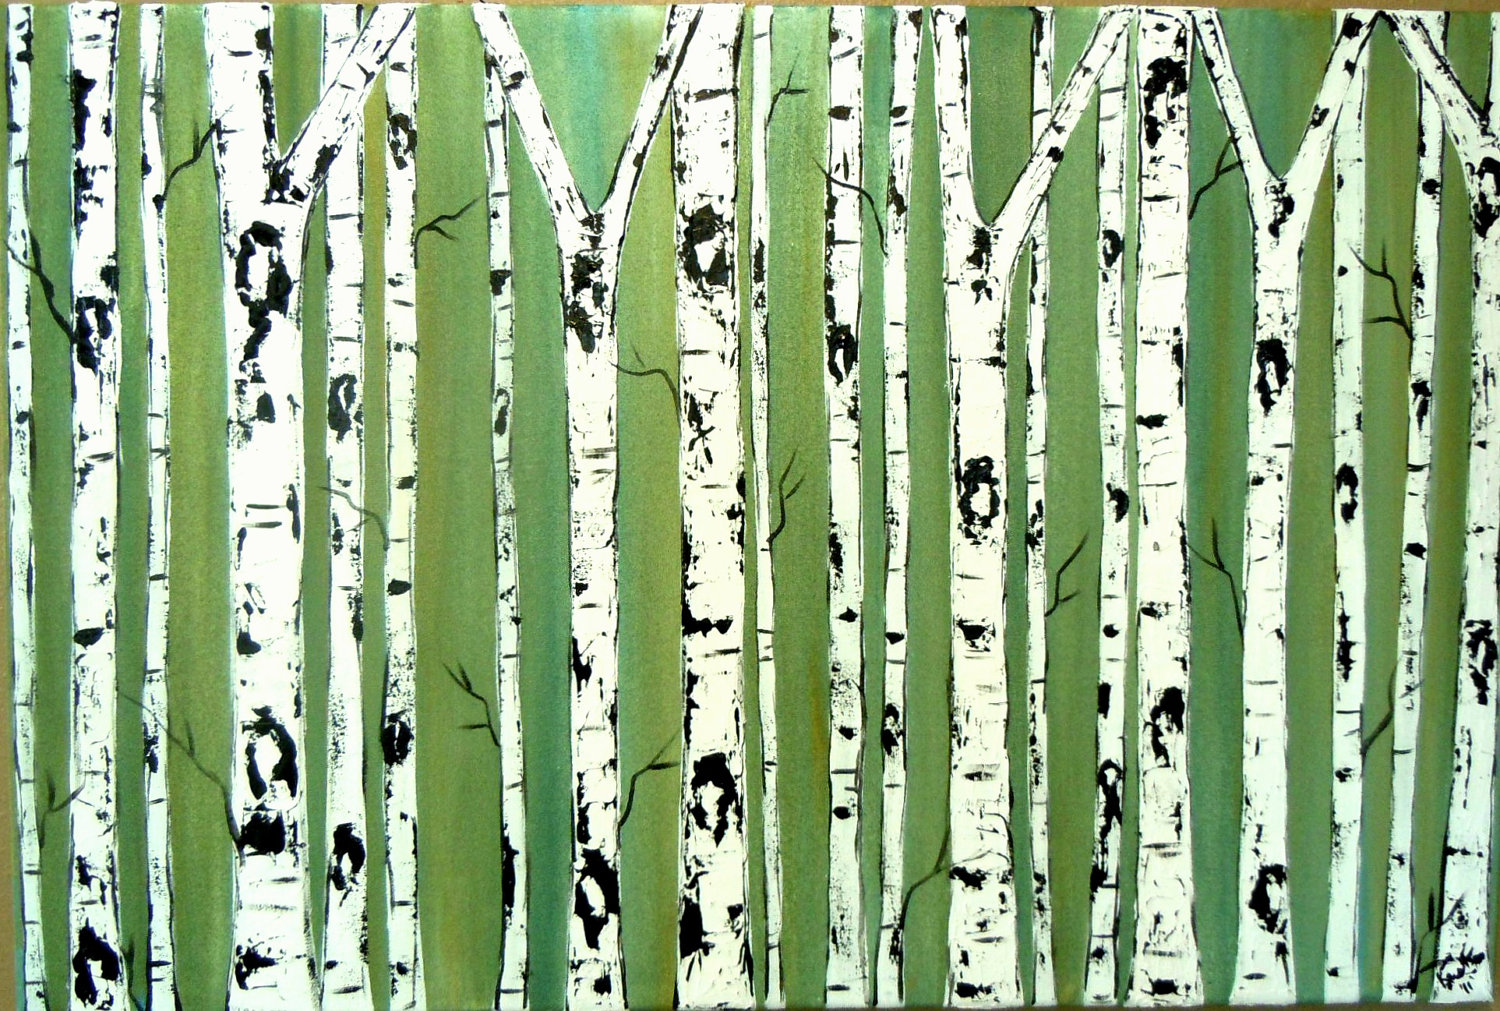 Birch Tree Background Birch trees on emerald 1500x1011